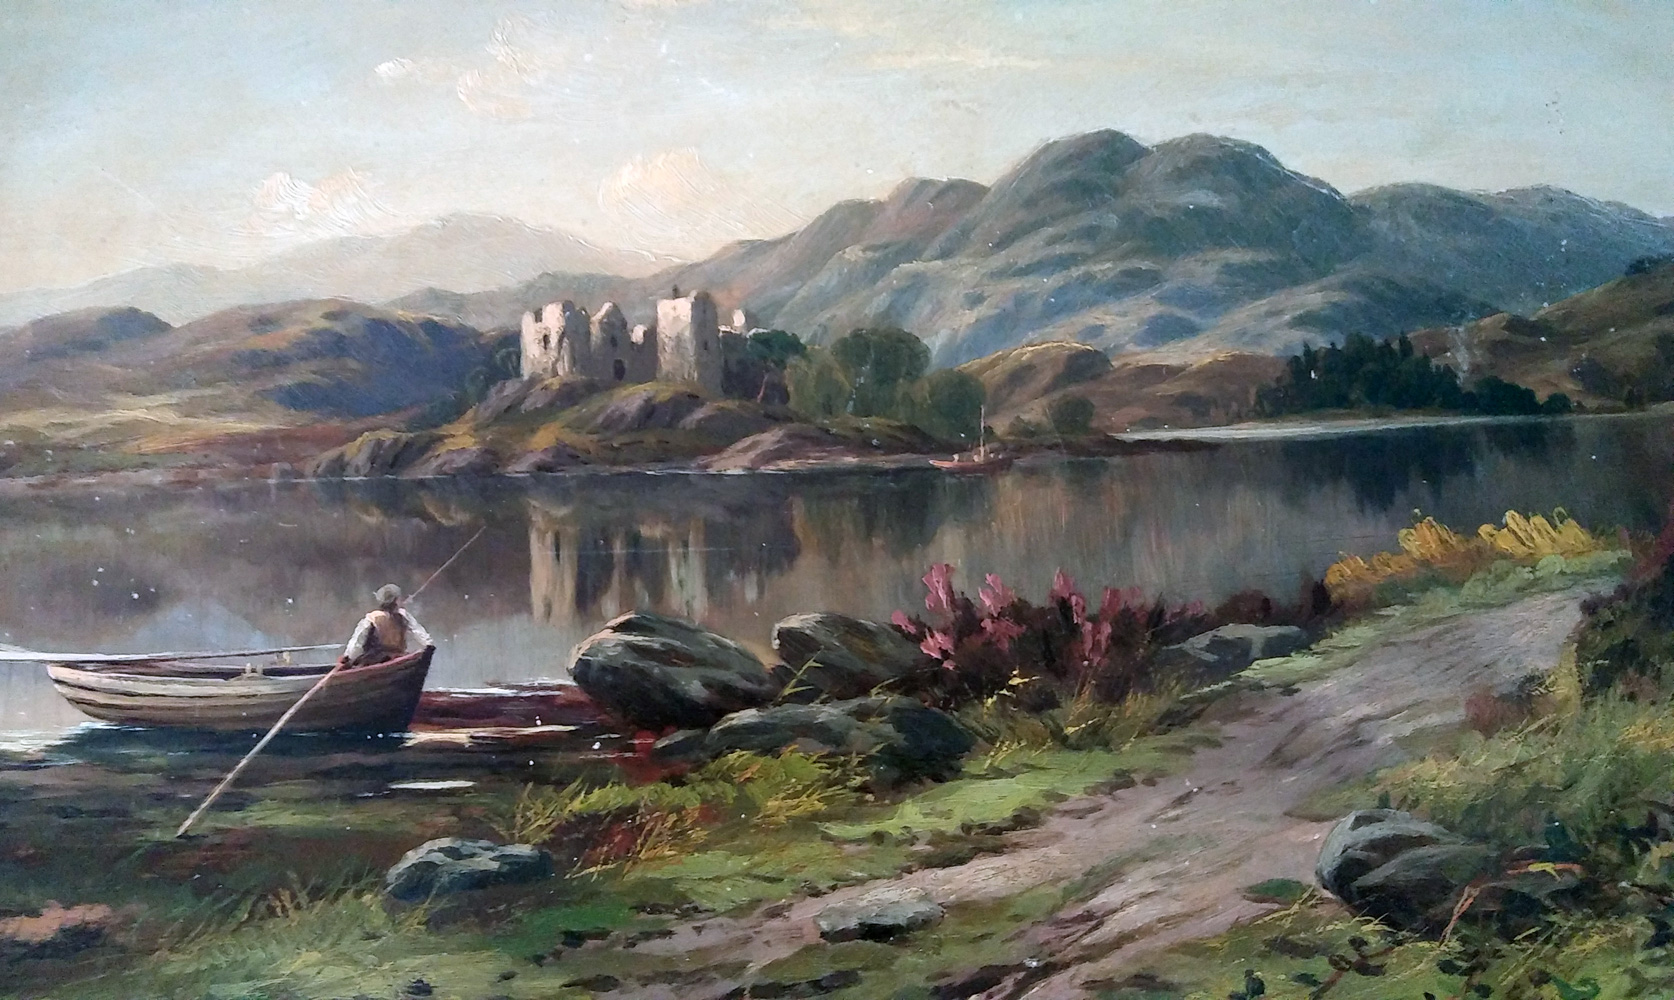 Man in Rowboat Overlooking Castle 1890 12x18